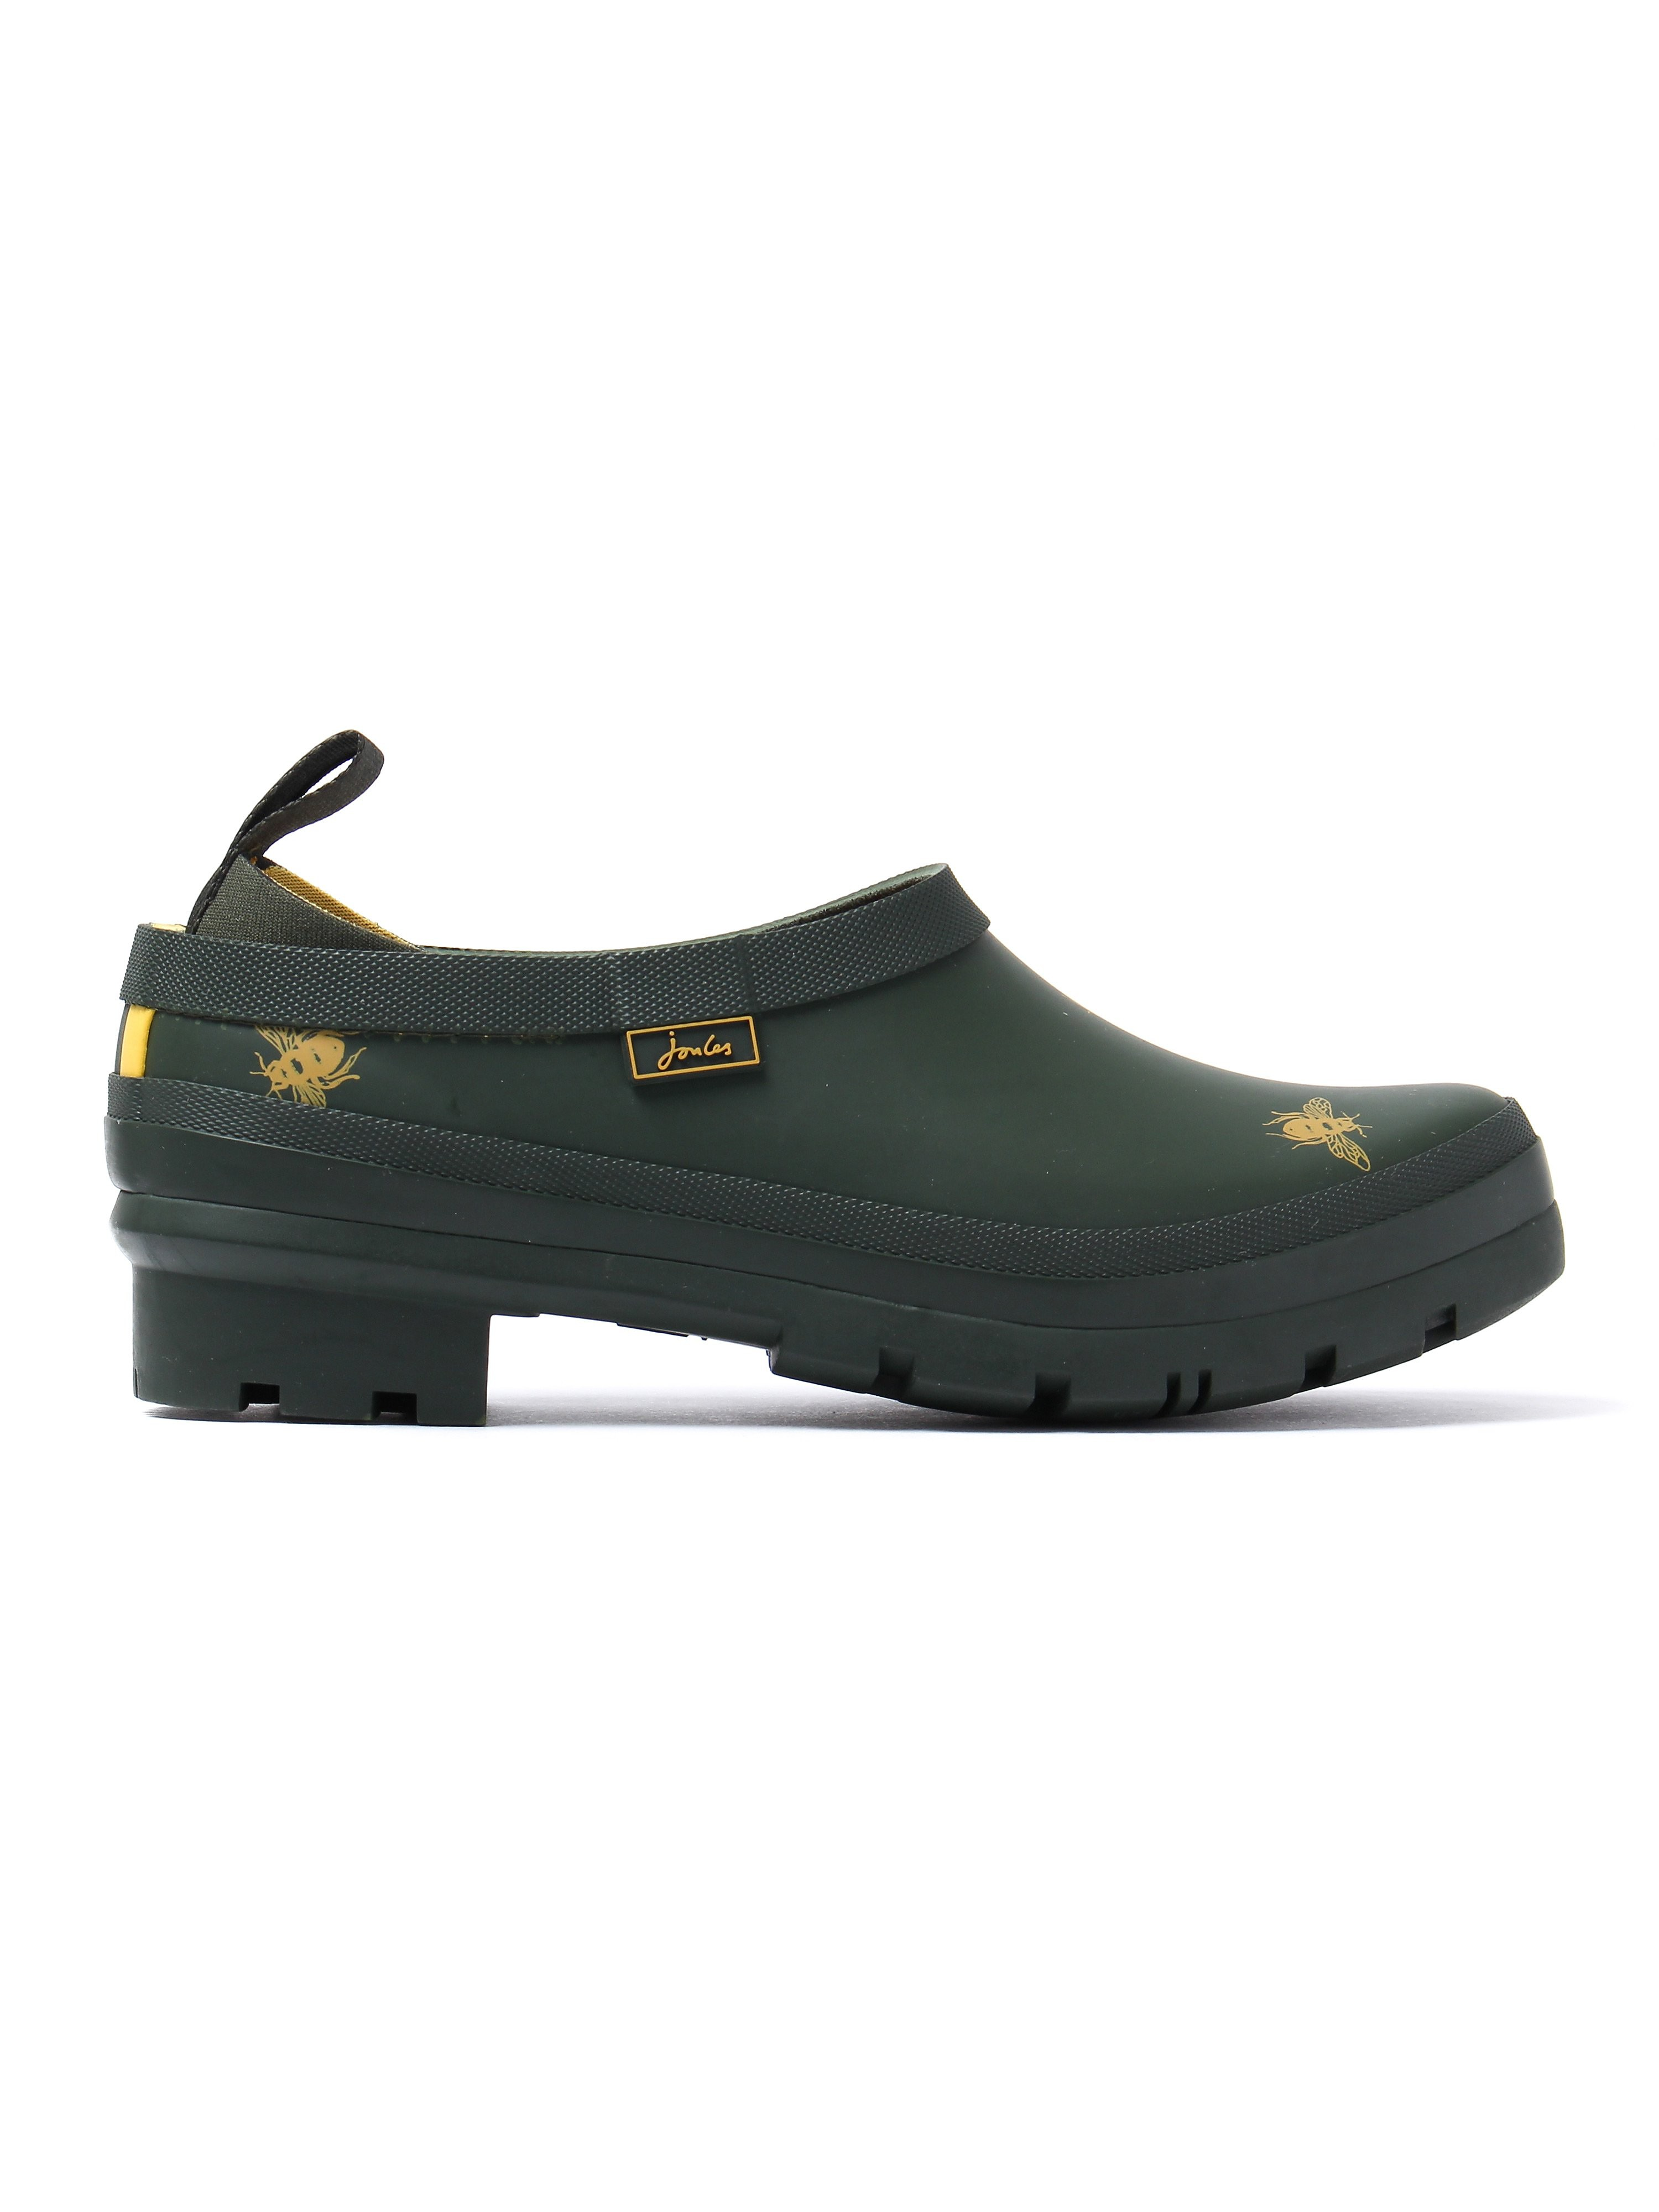 Joules Women's Pop-On Welly Clogs - Olive Bees